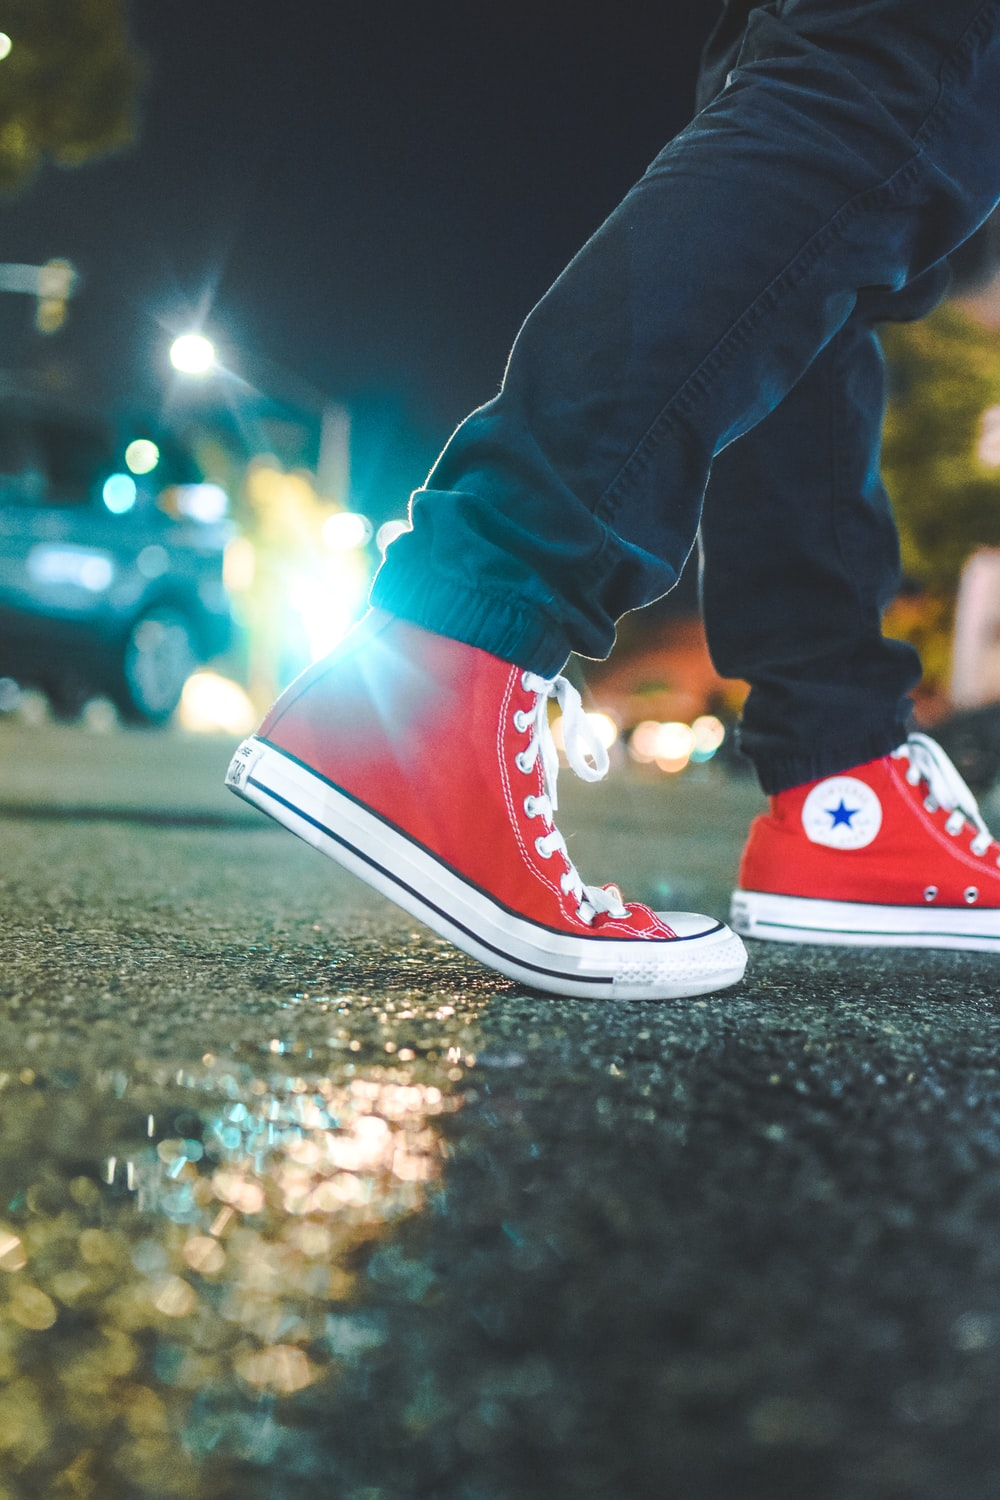 684f0d505c61 worm s eye view photo of person wearing pair of red Converse All Star  sneakers